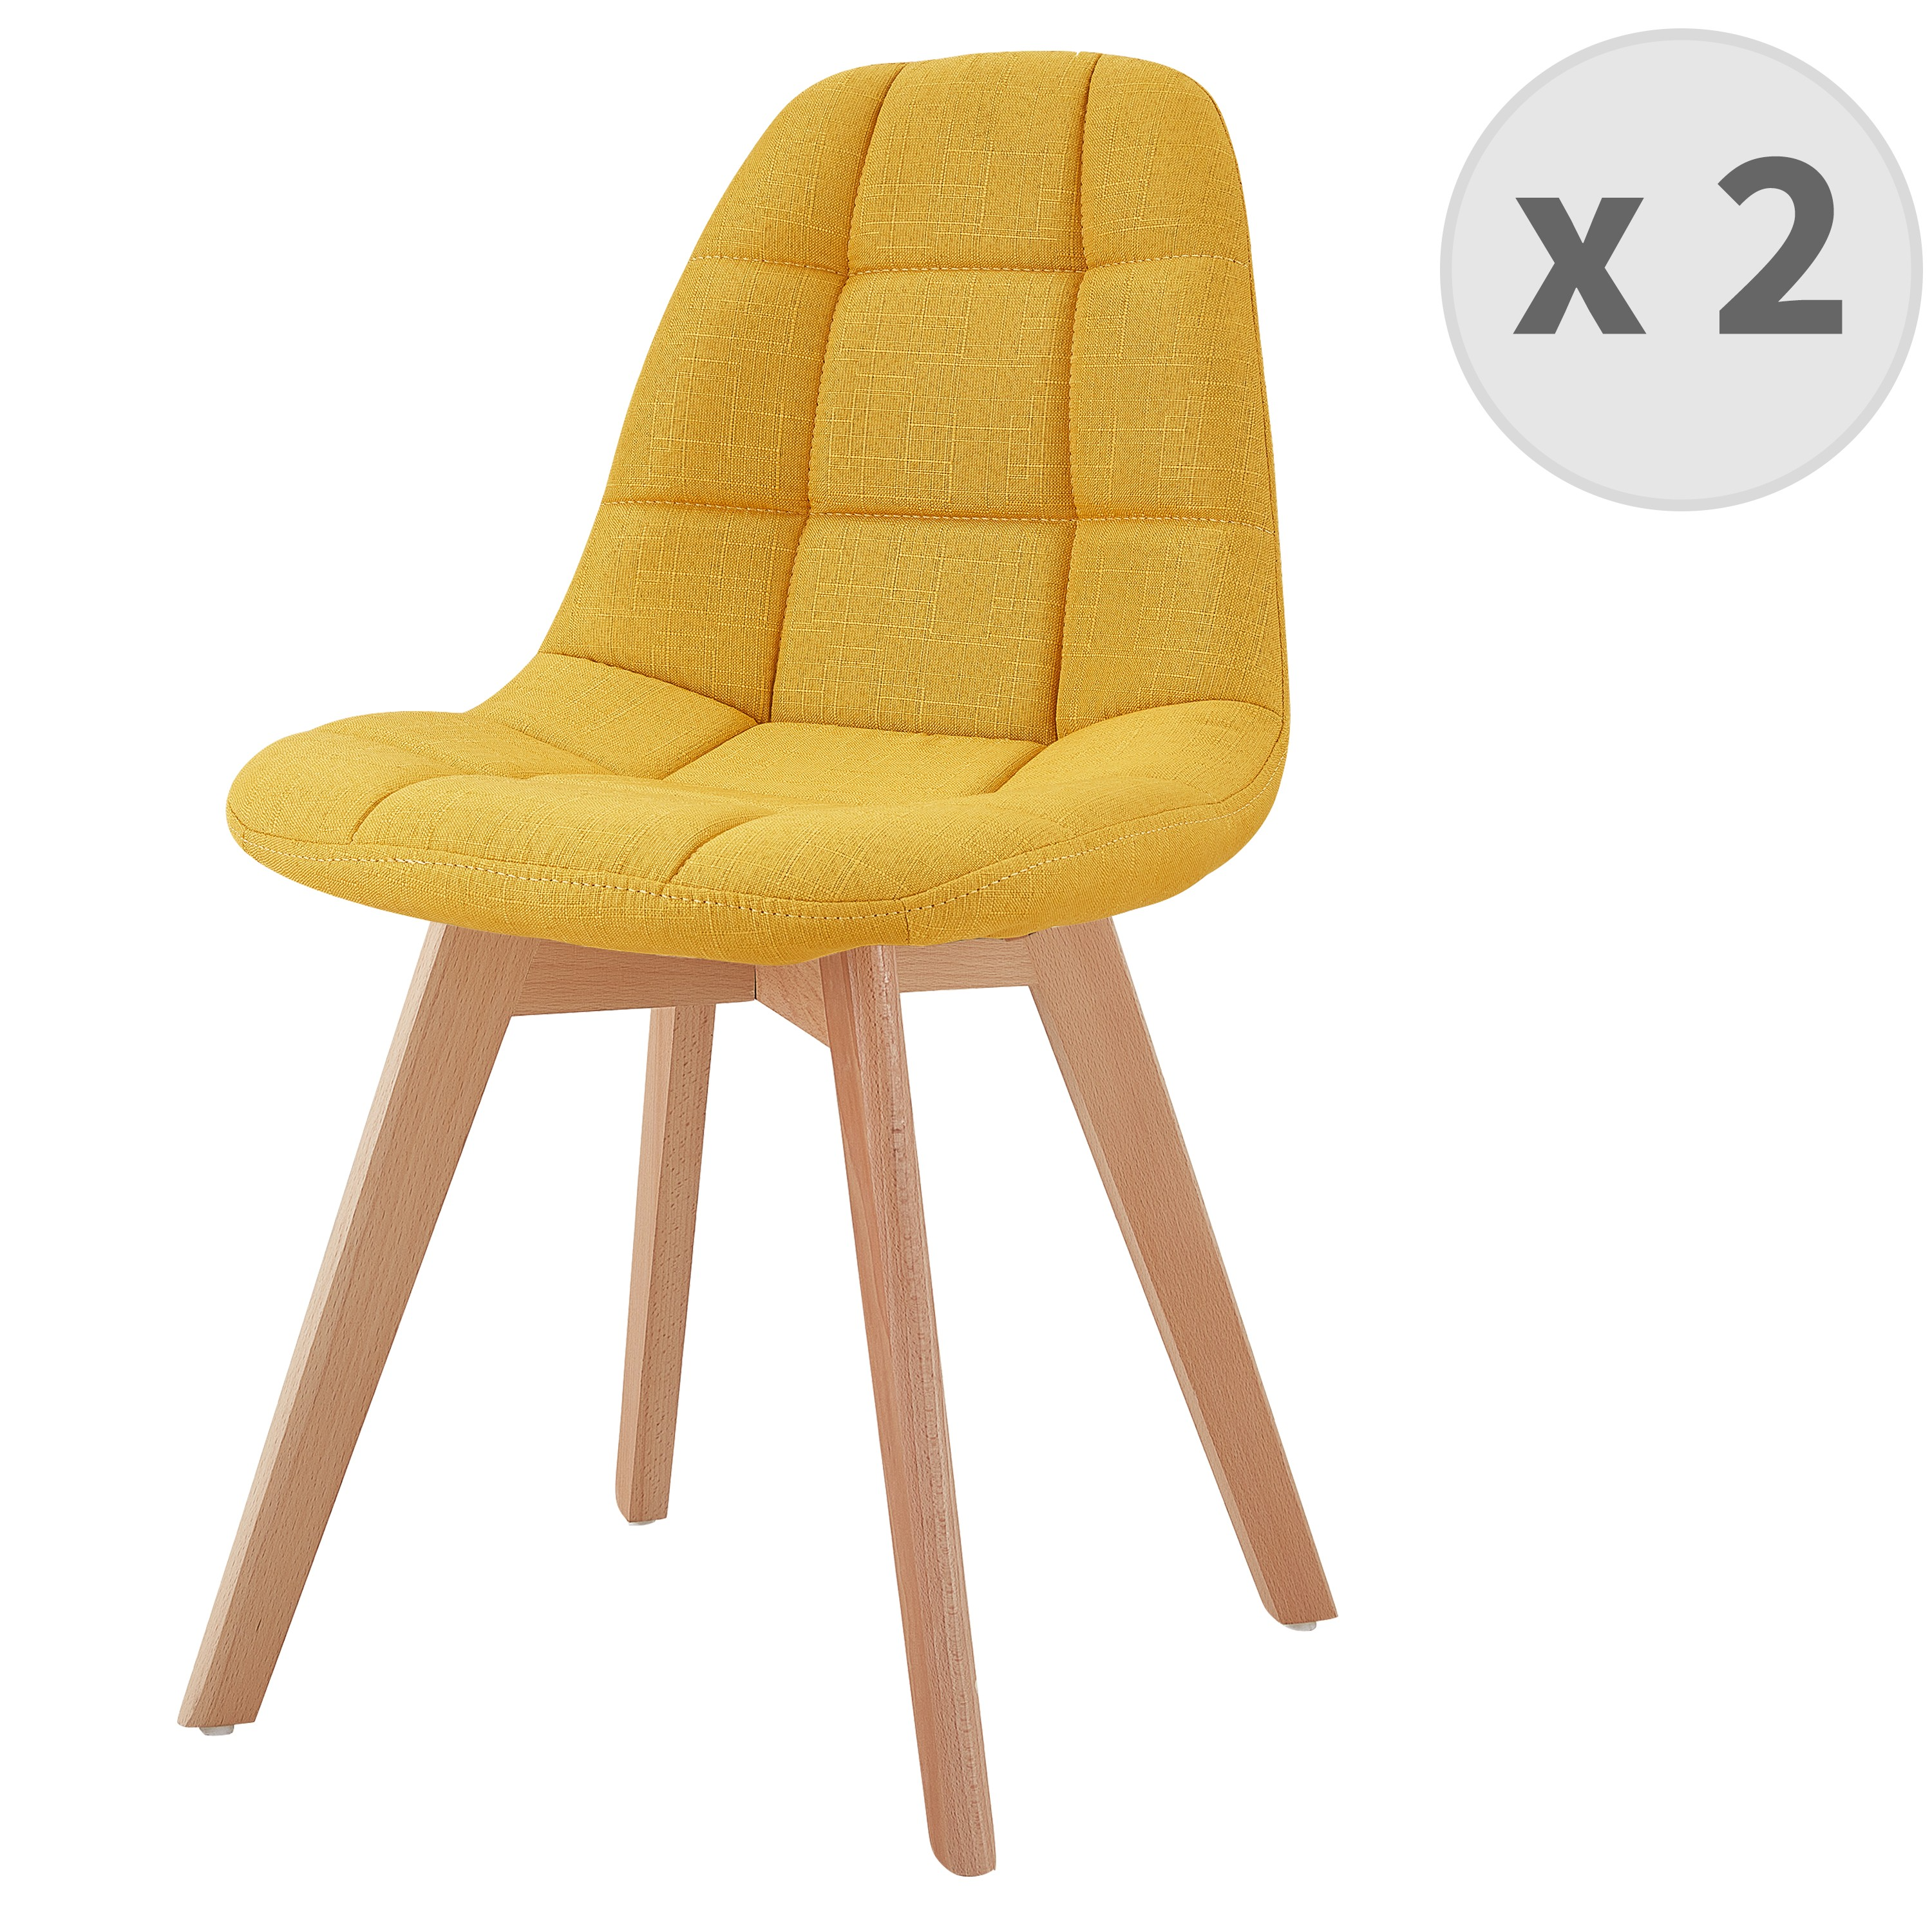 Chaise scandinave tissu curry pied hêtre (x2)